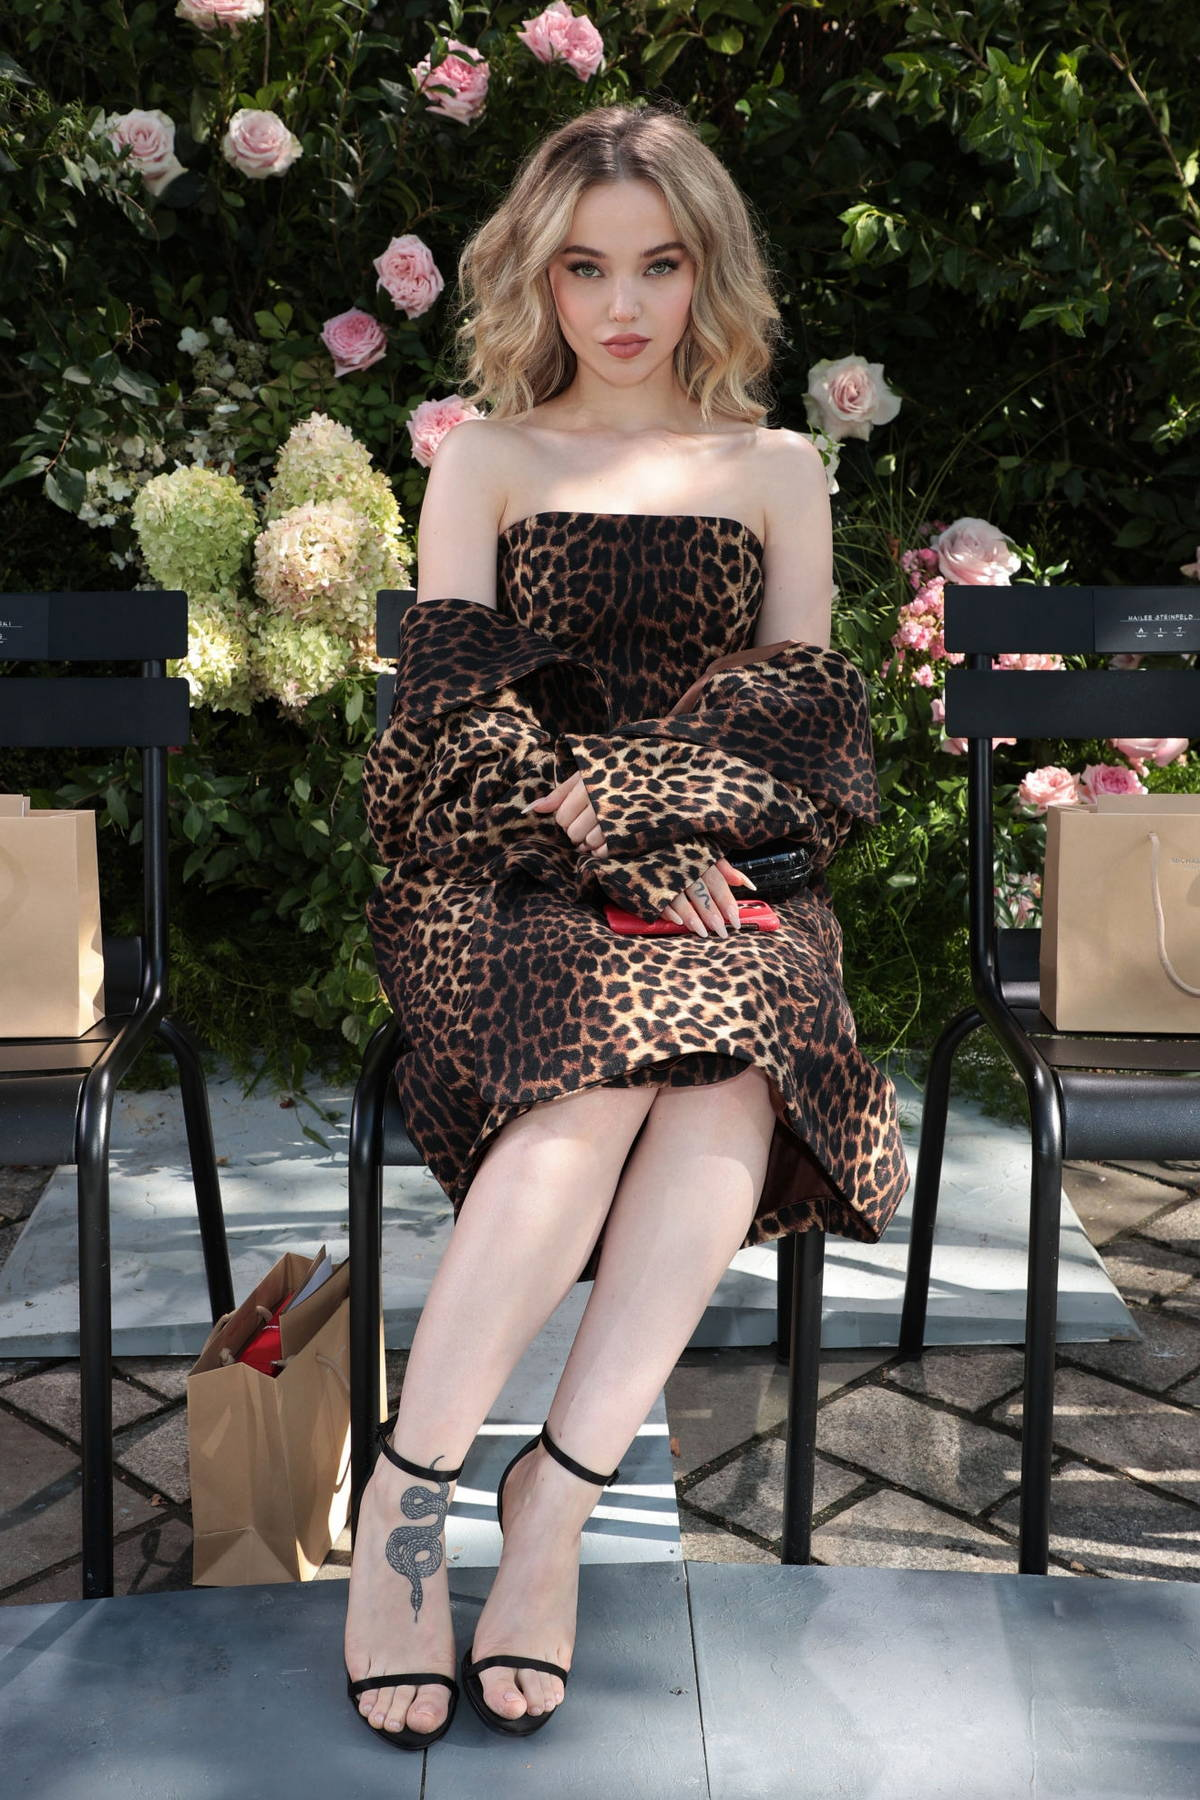 Dove Cameron attends the Michael Kors SP22 fashion show during New York Fashion Week in New York City